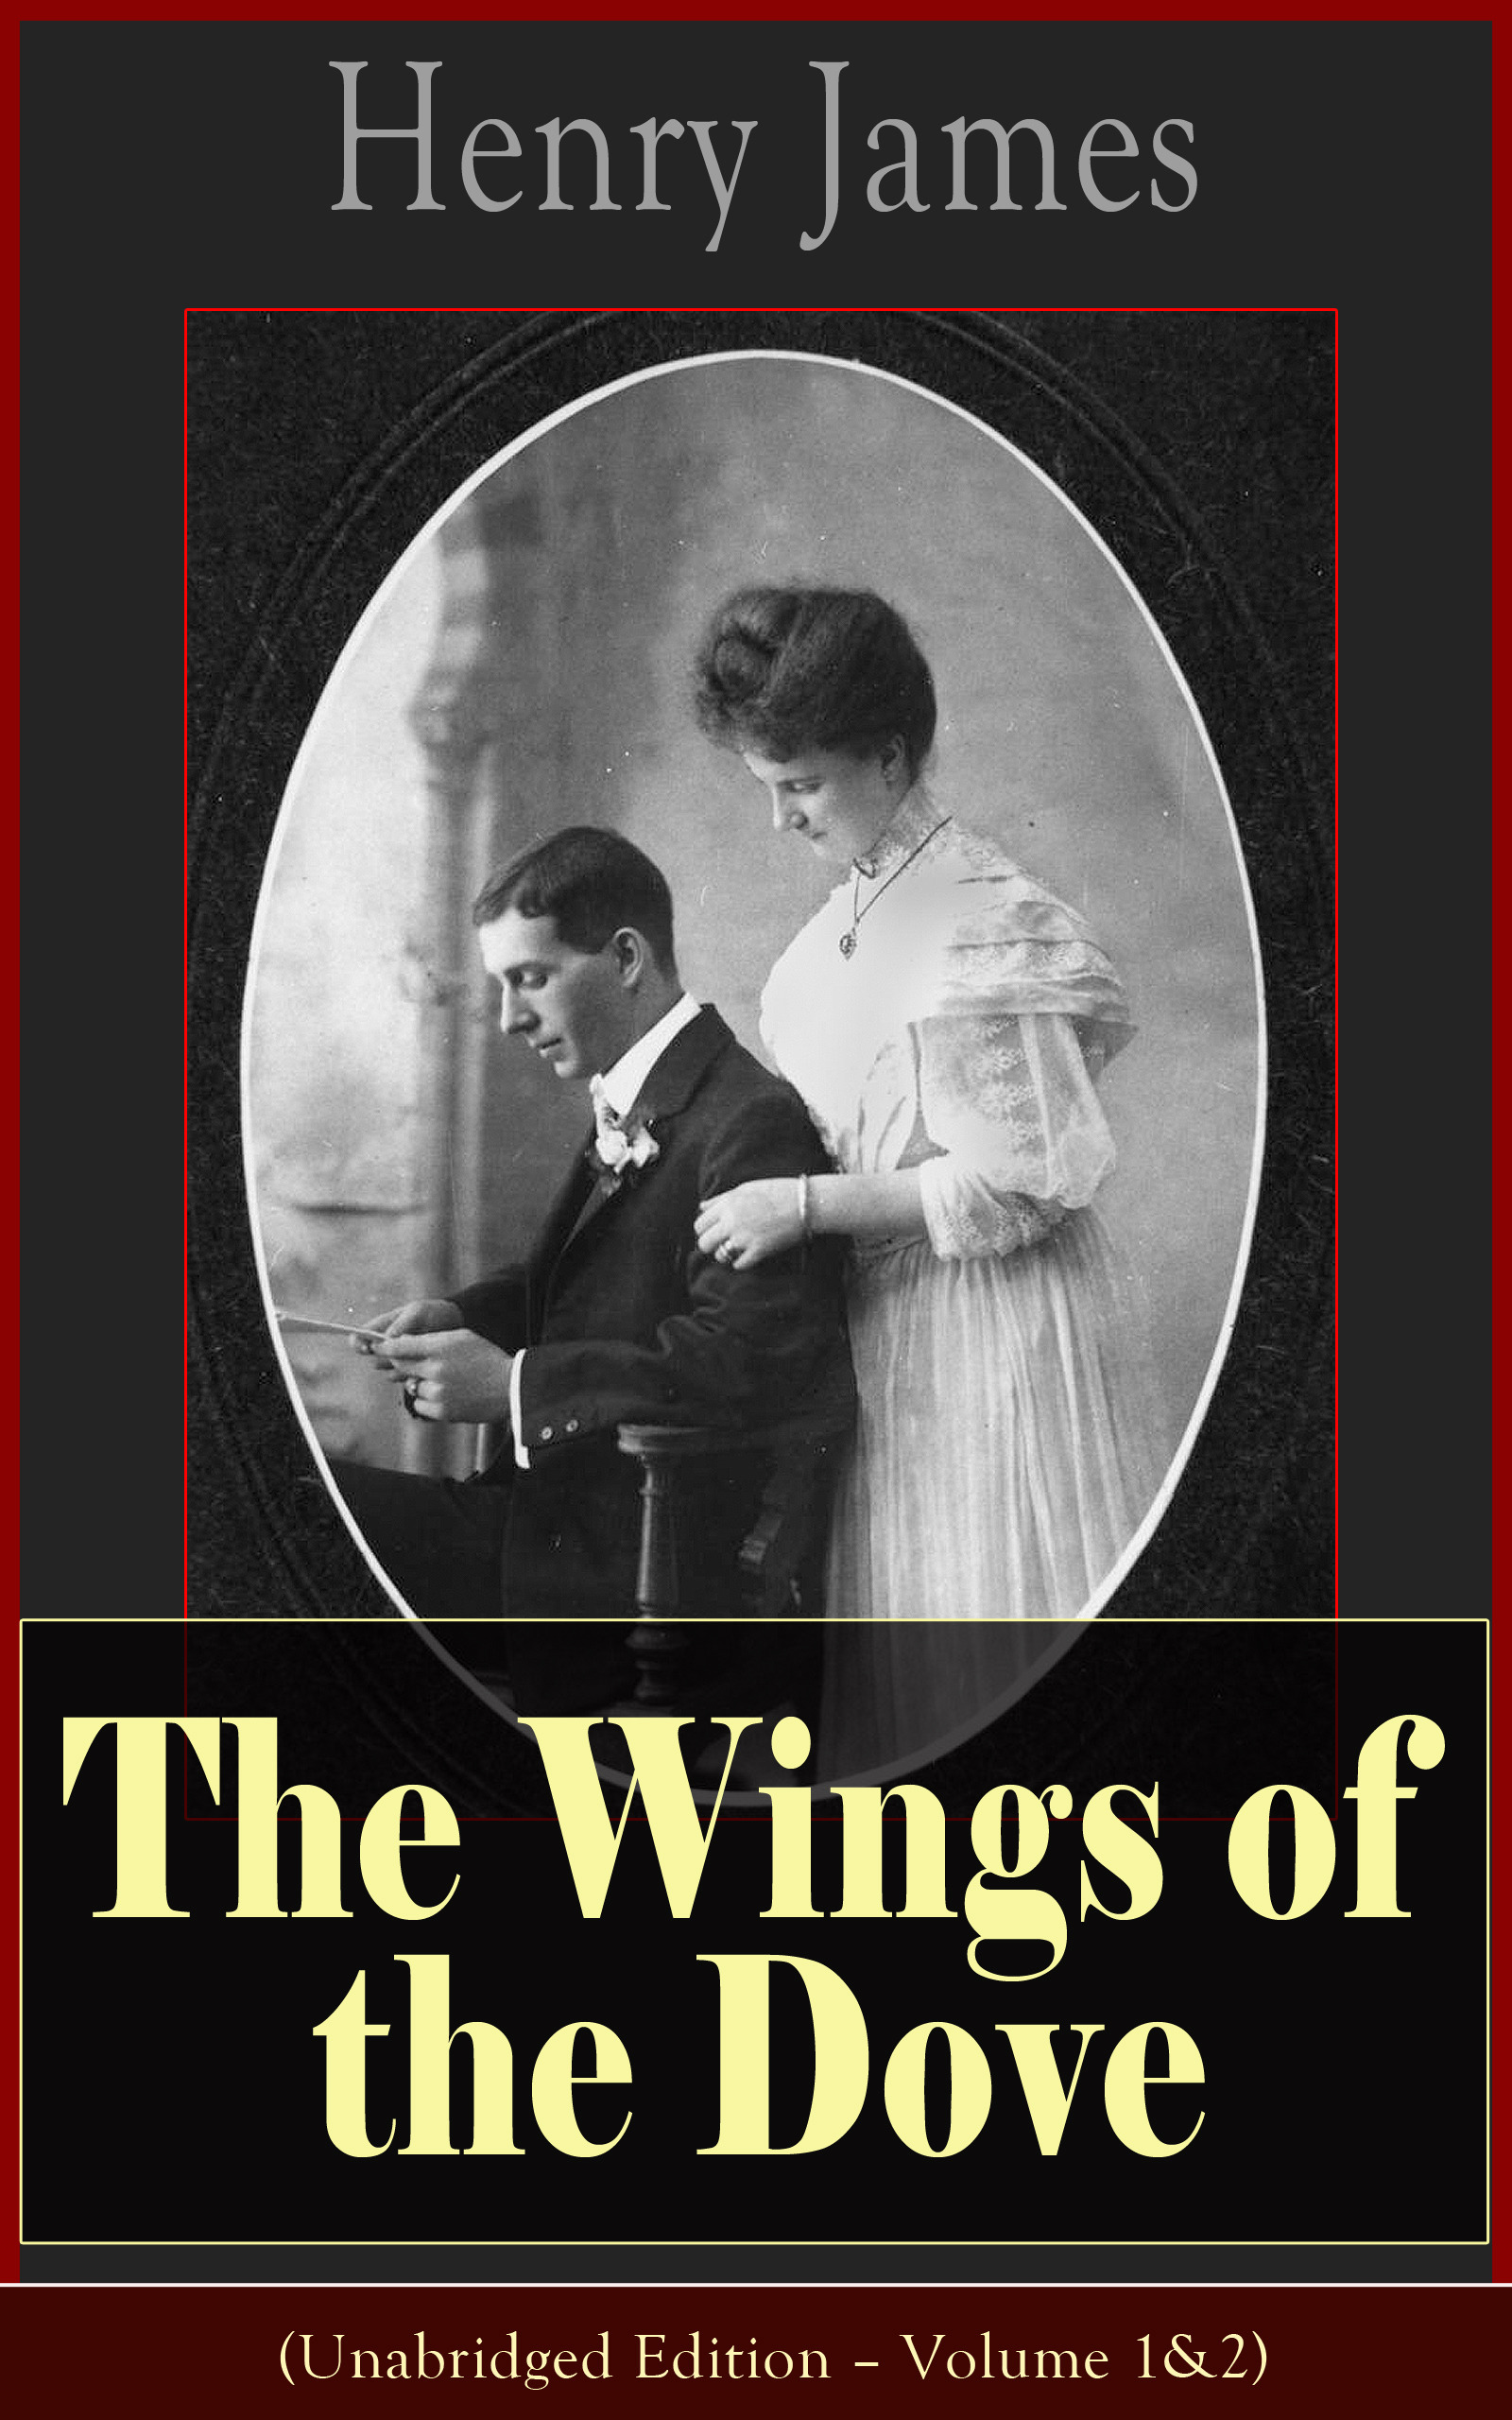 The Wings of the Dove (Unabridged Edition - Volume 1&2)